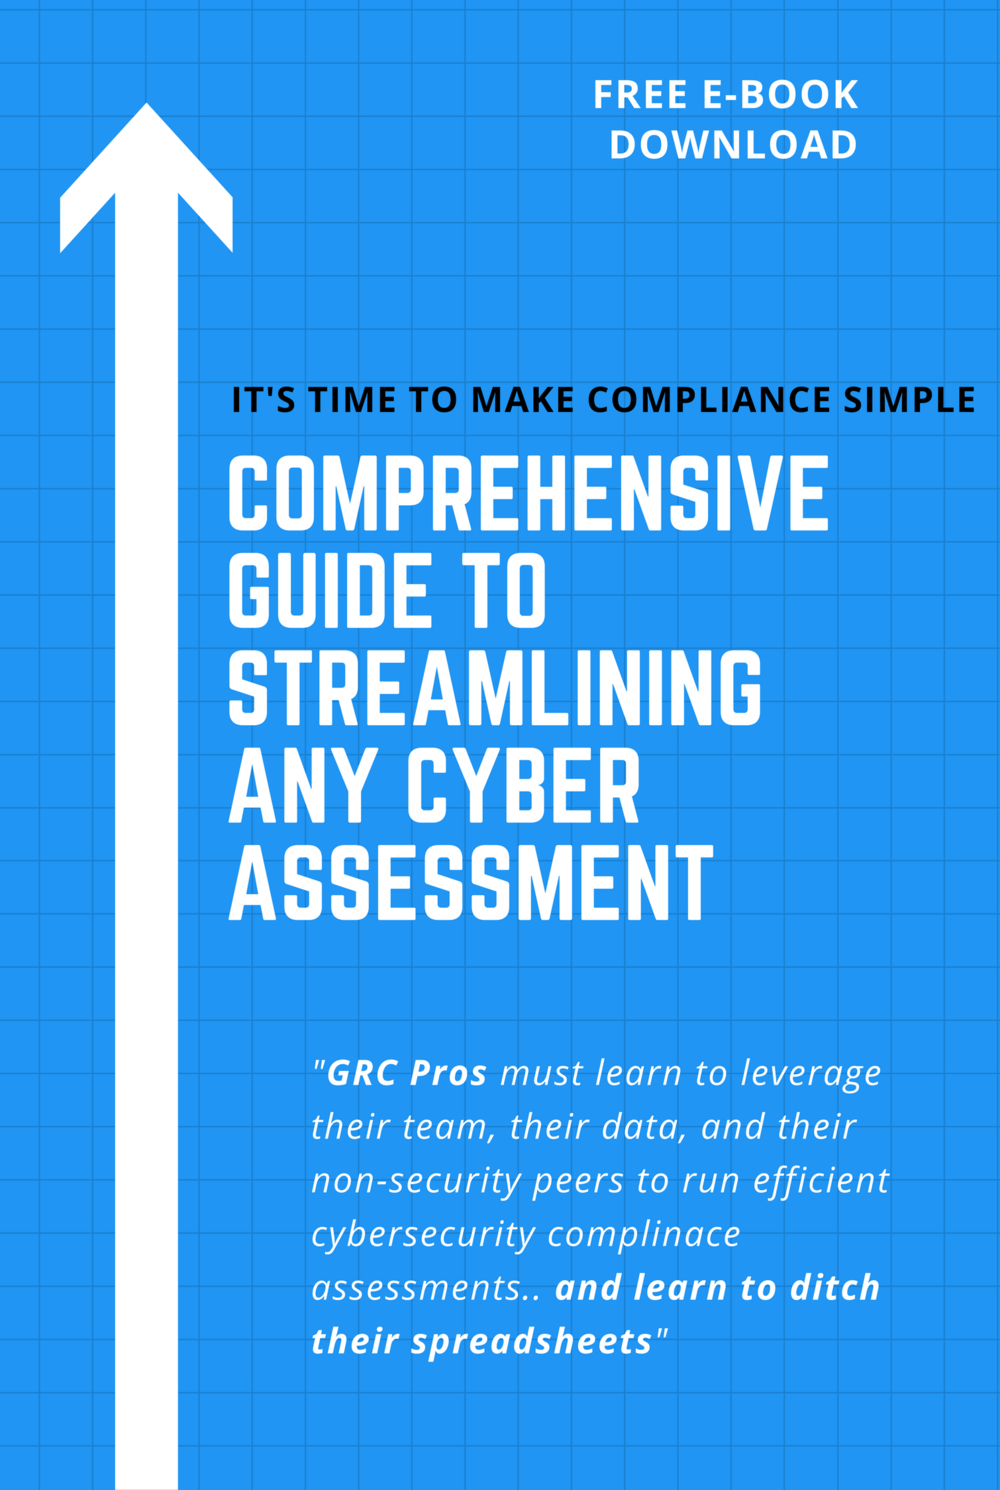 cyber assessment best practices